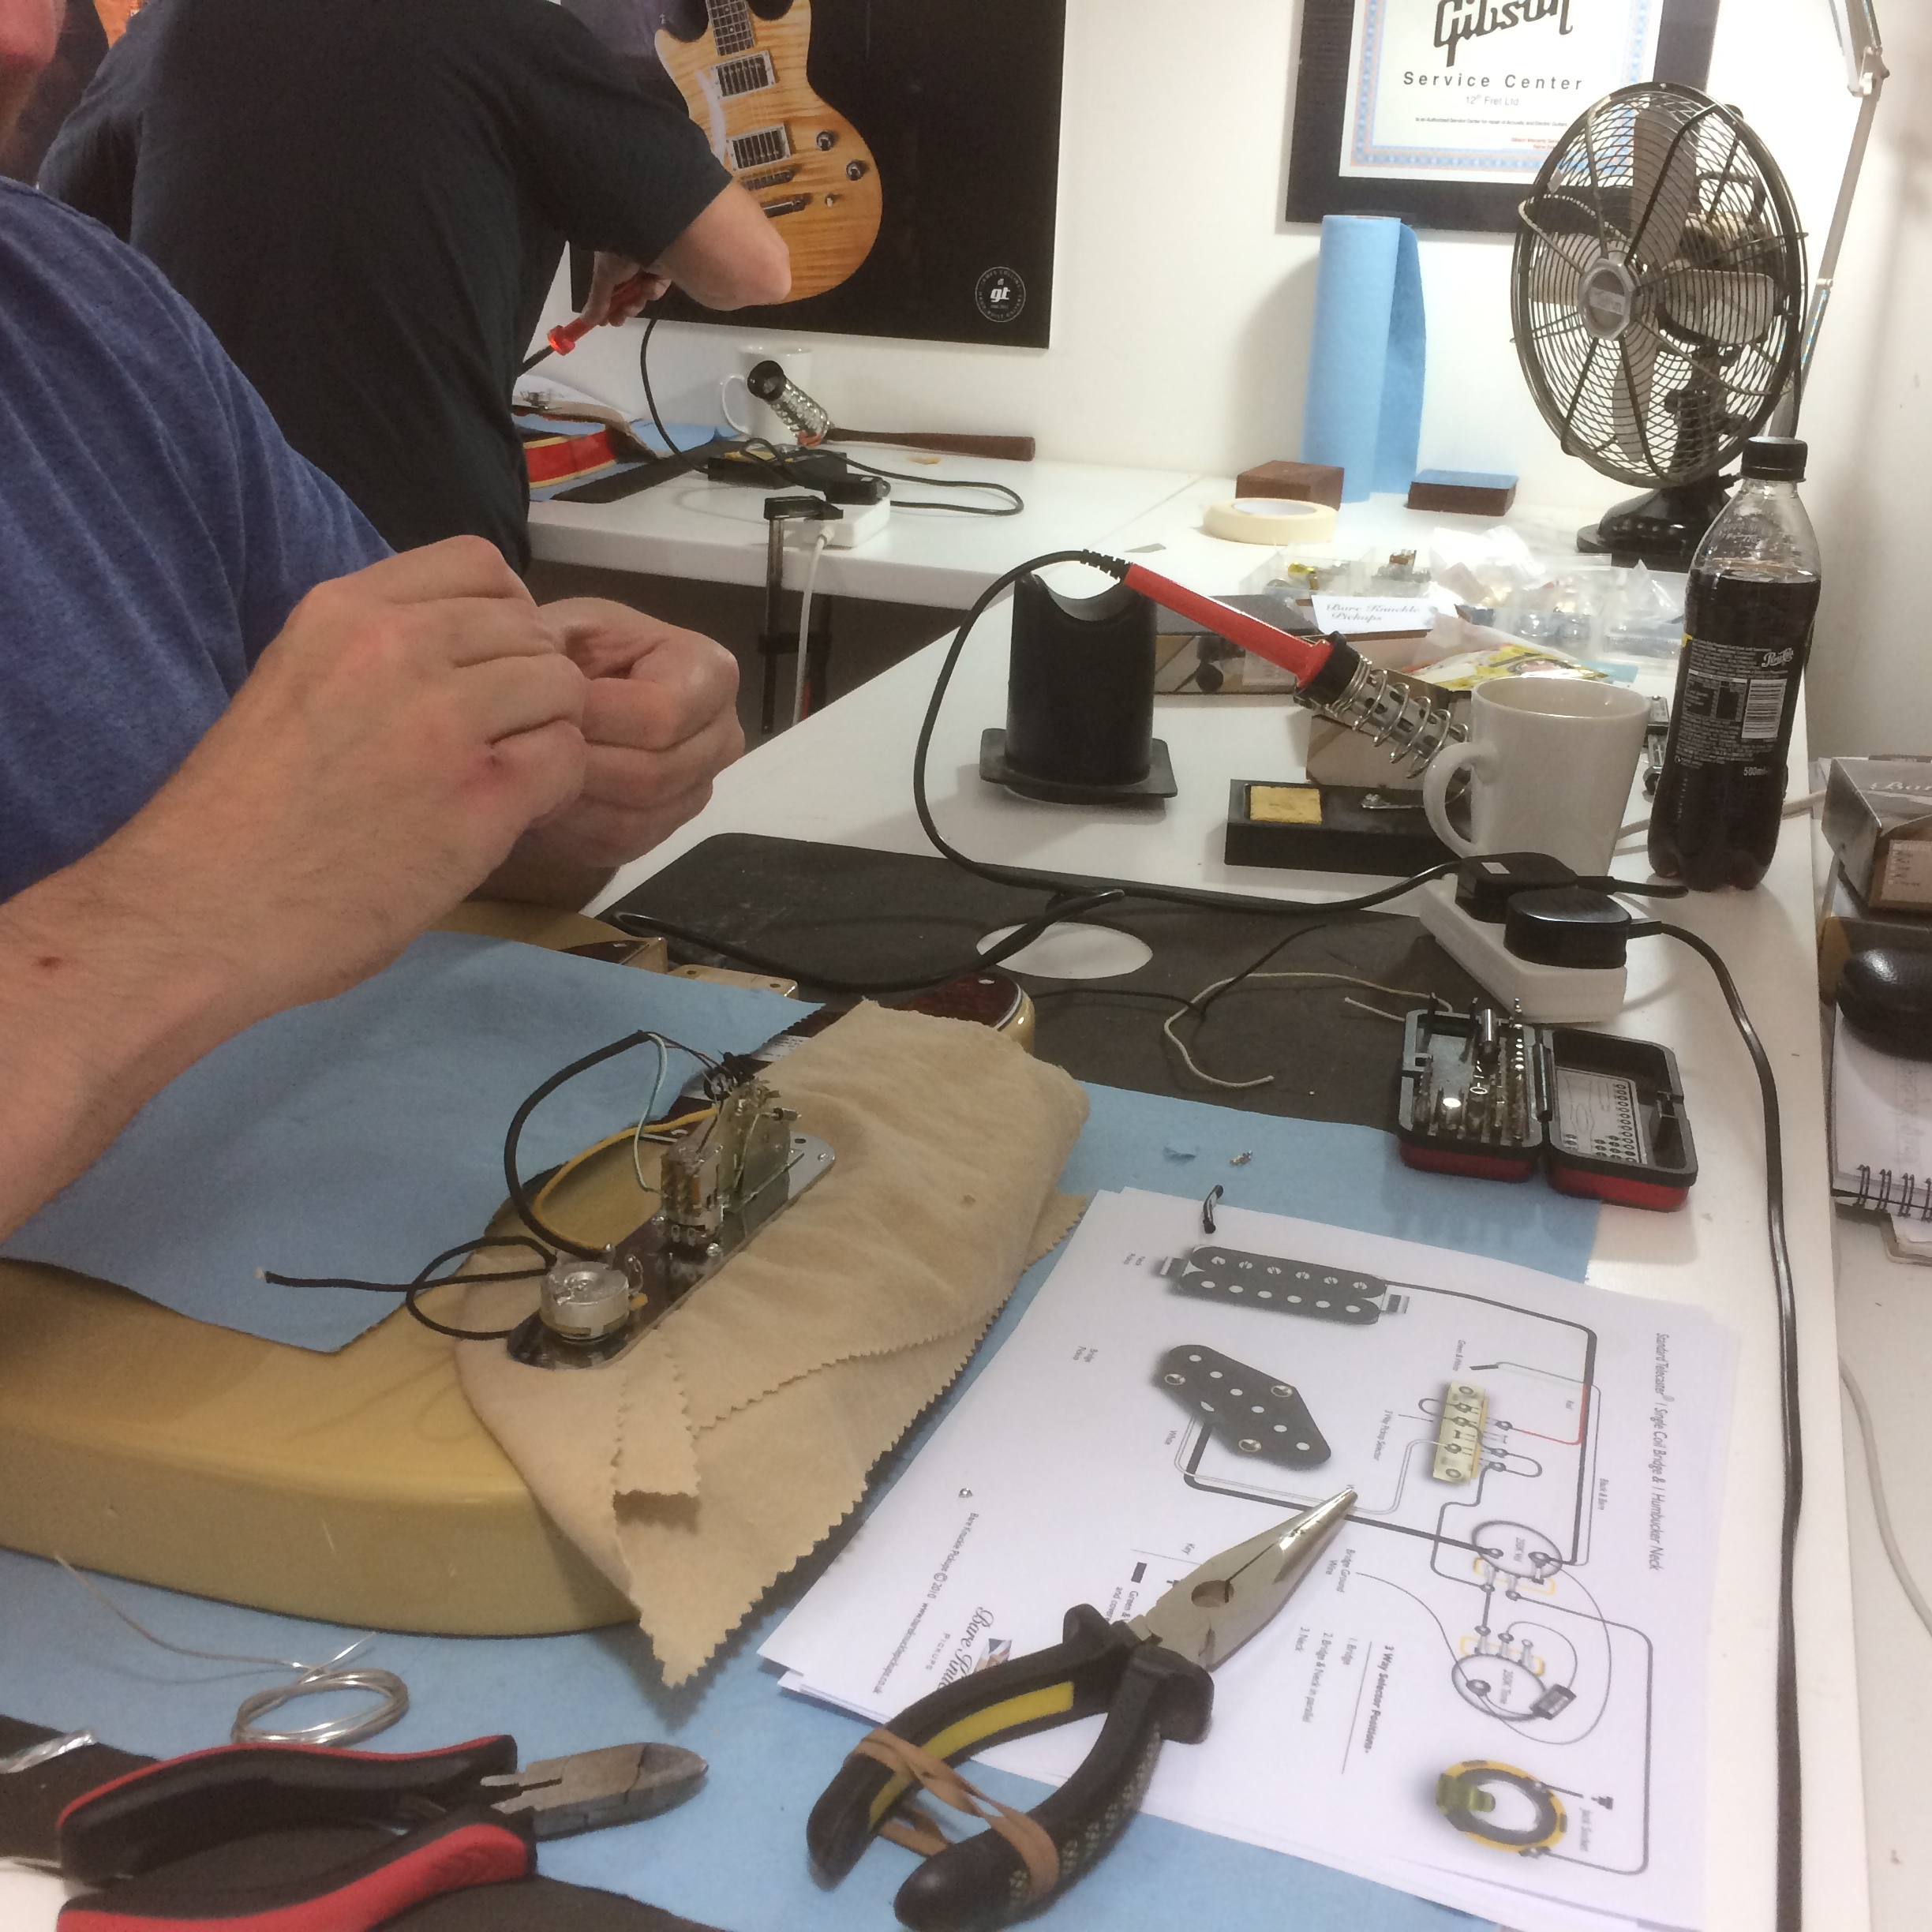 Guitar Building Course And Setup Tech Courses Electrical Wiring Classes Build